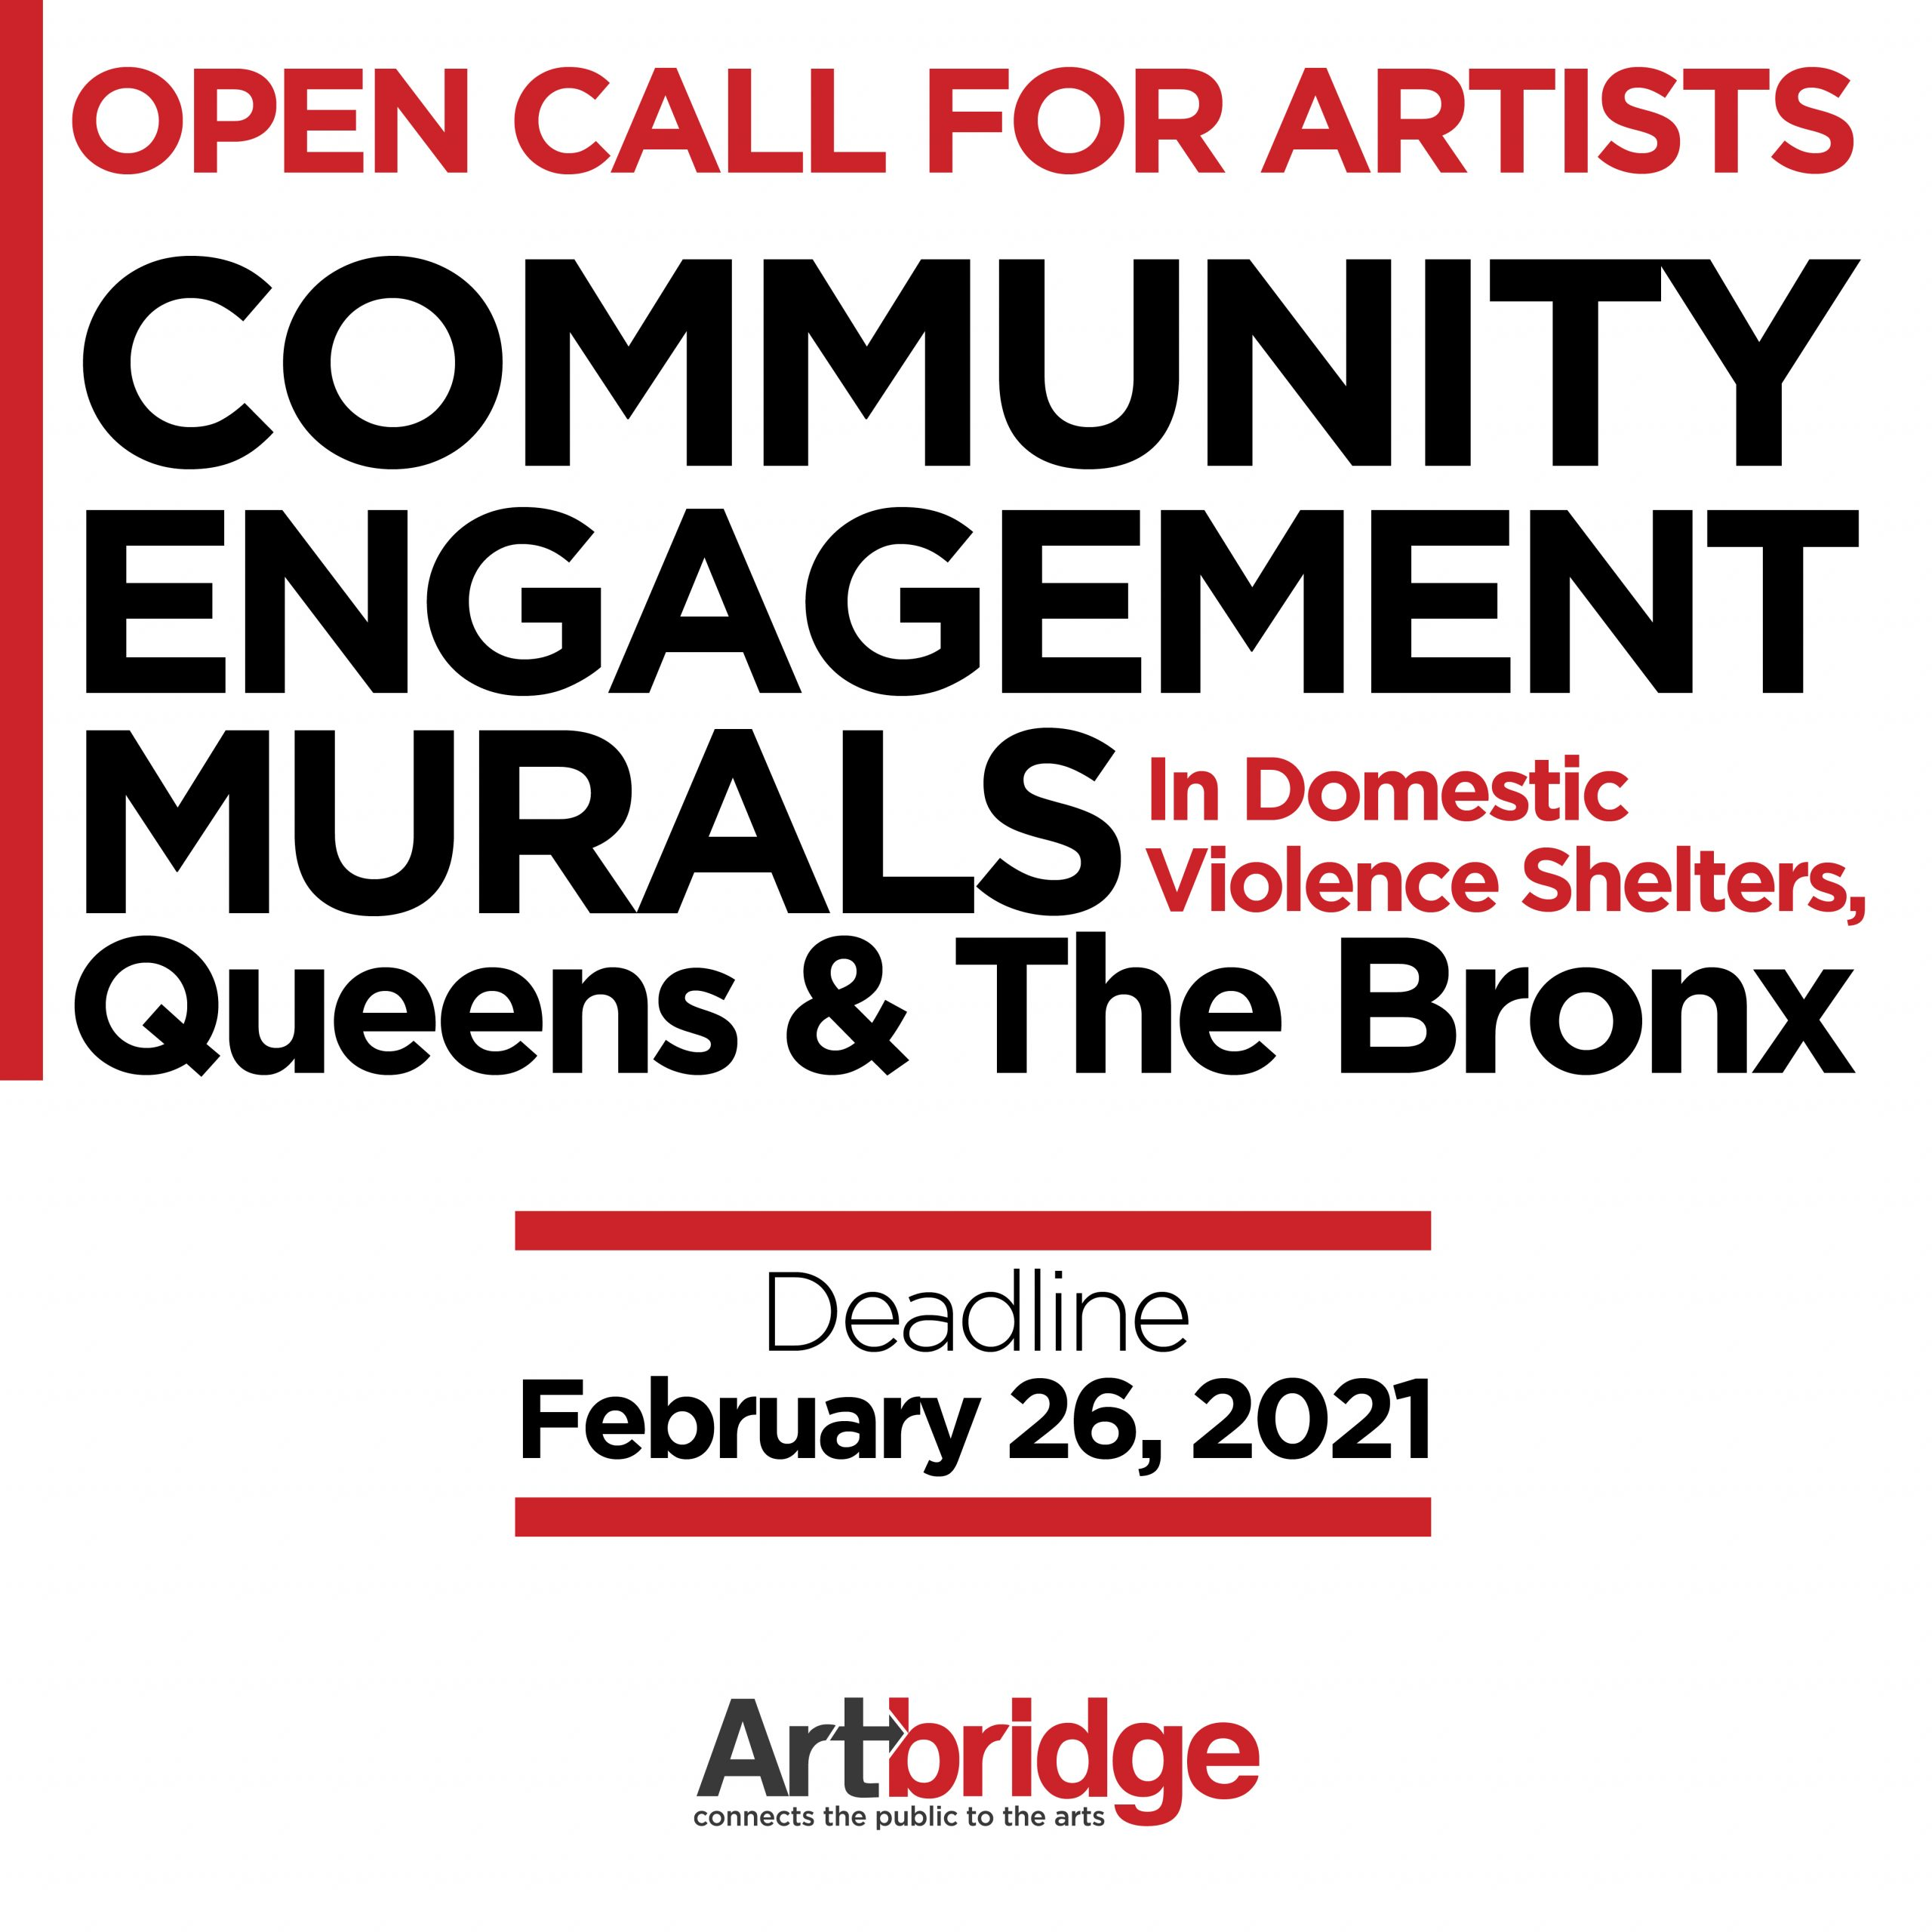 Open call for community murals